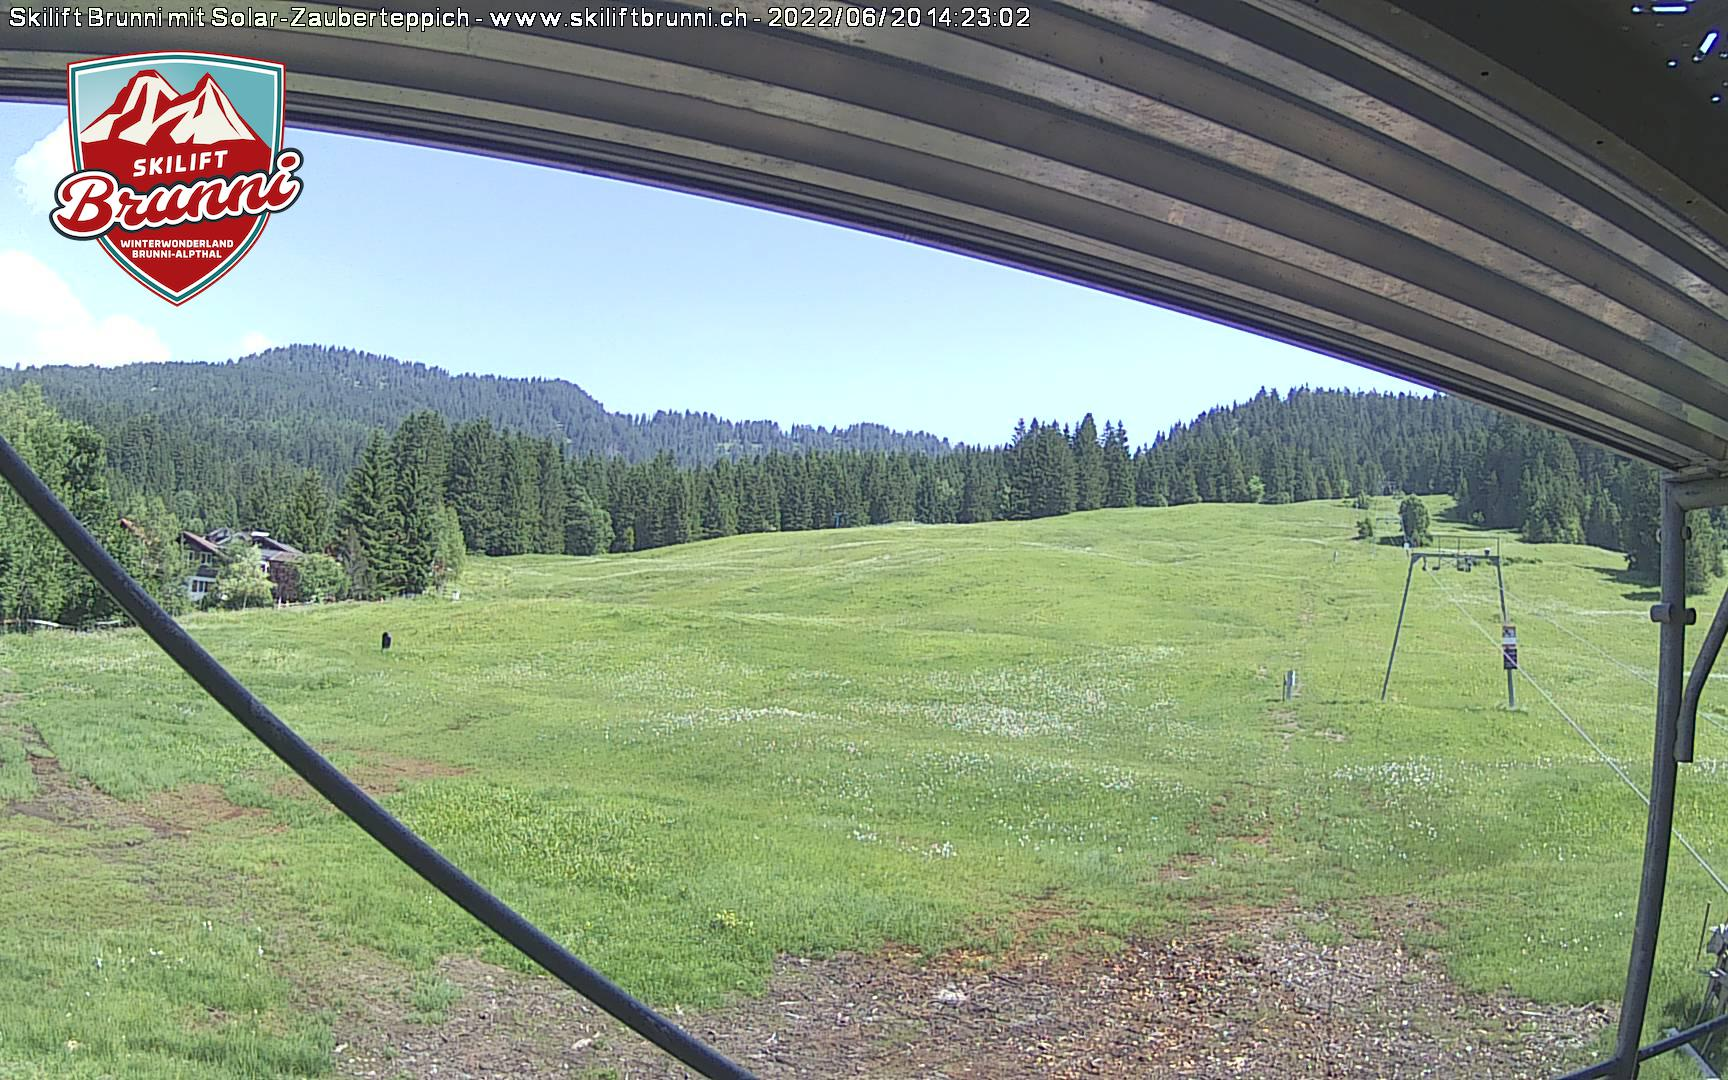 Webcam Skilift Brunni